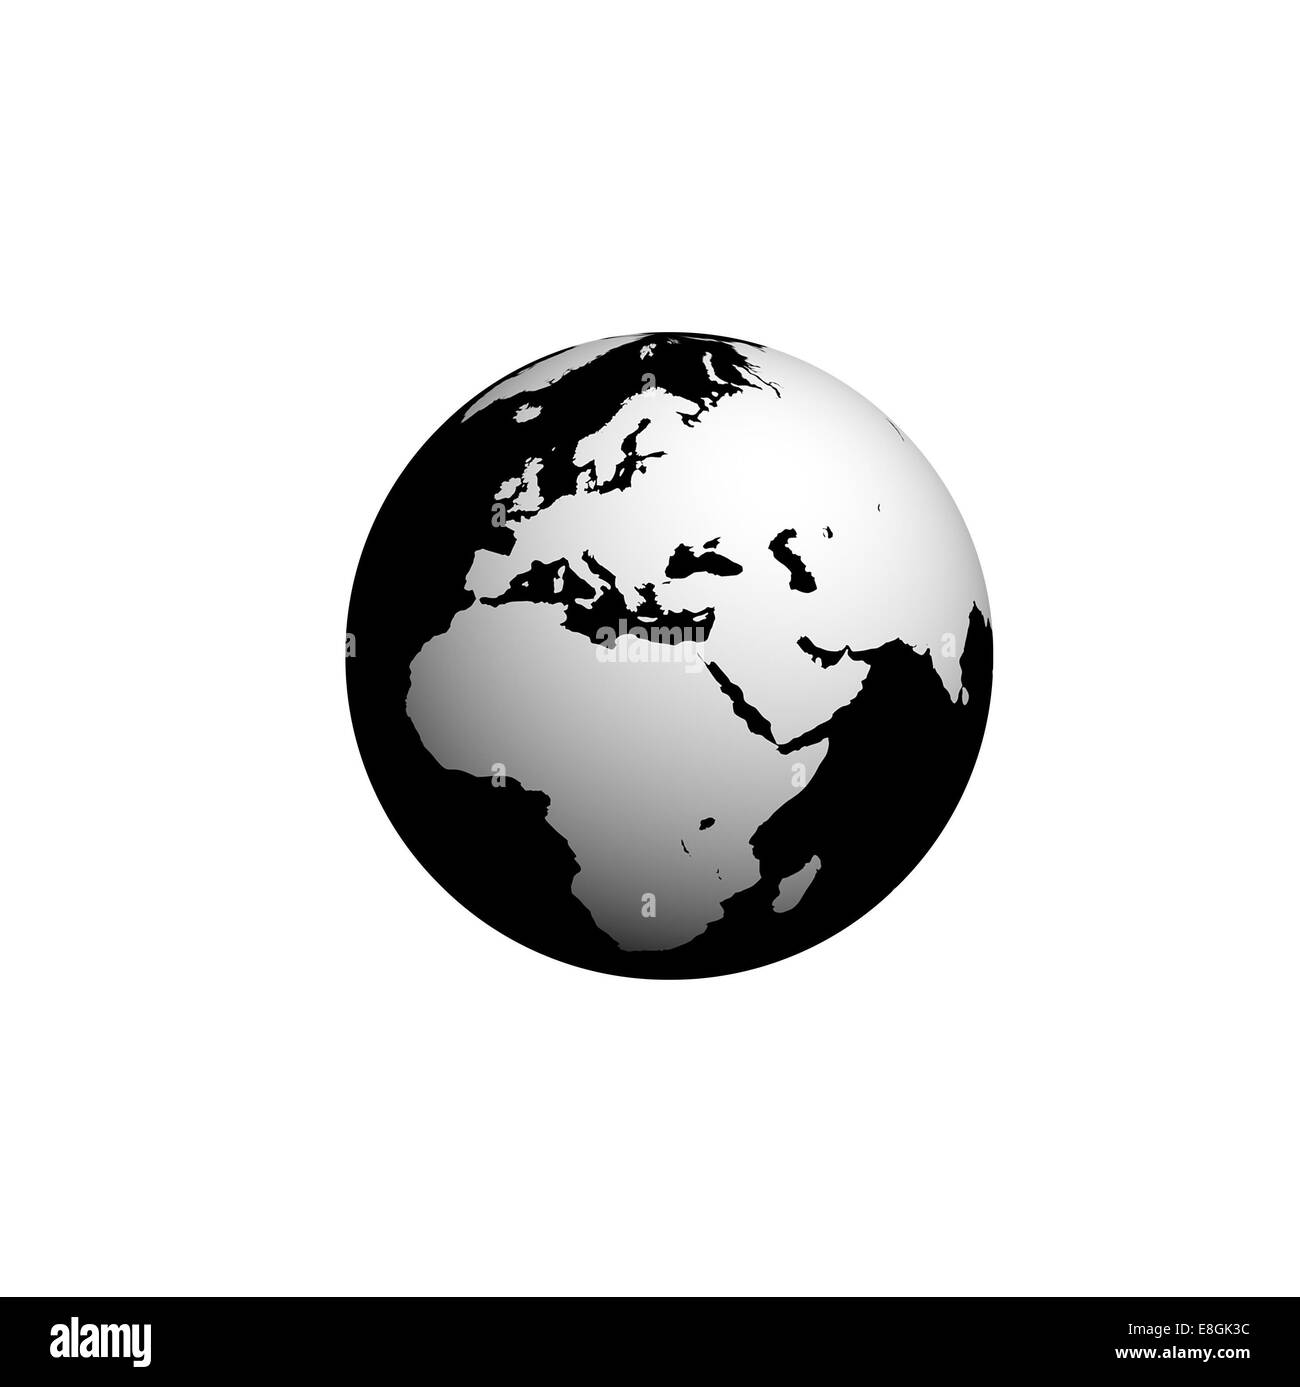 Digitally Generated Image Of Planet Earth Black And White